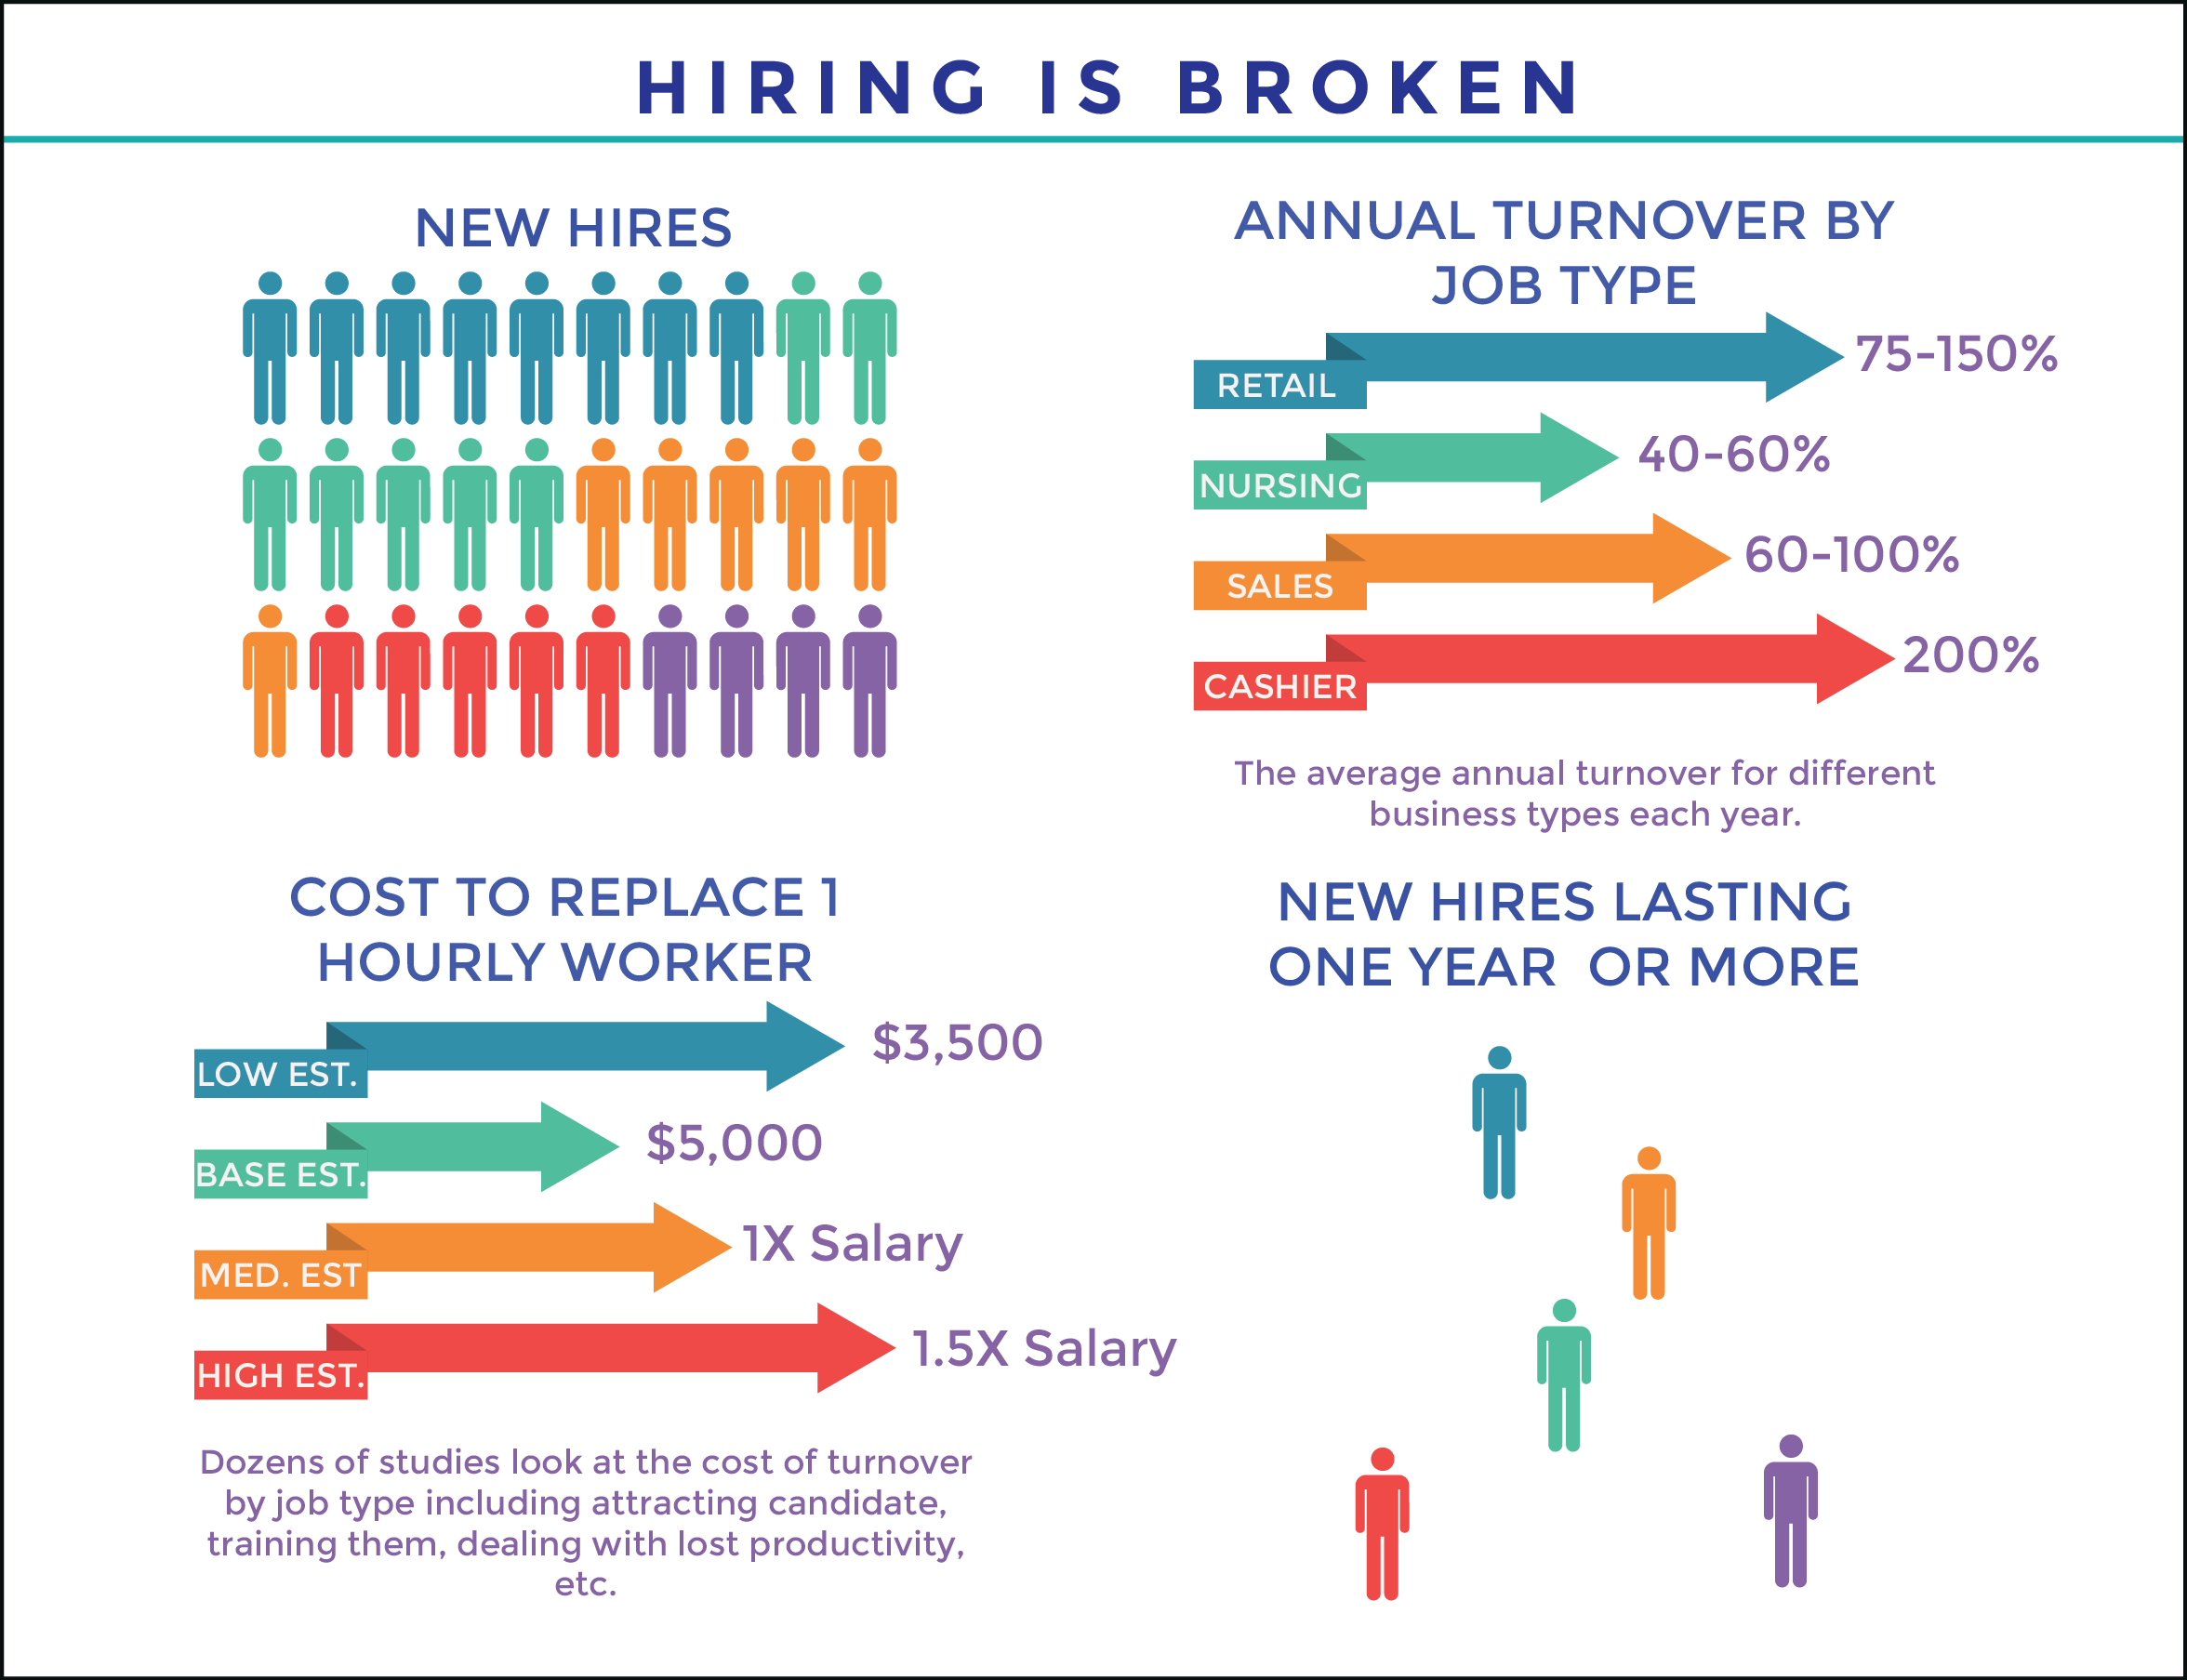 Employee Turnover - Rates and Costs